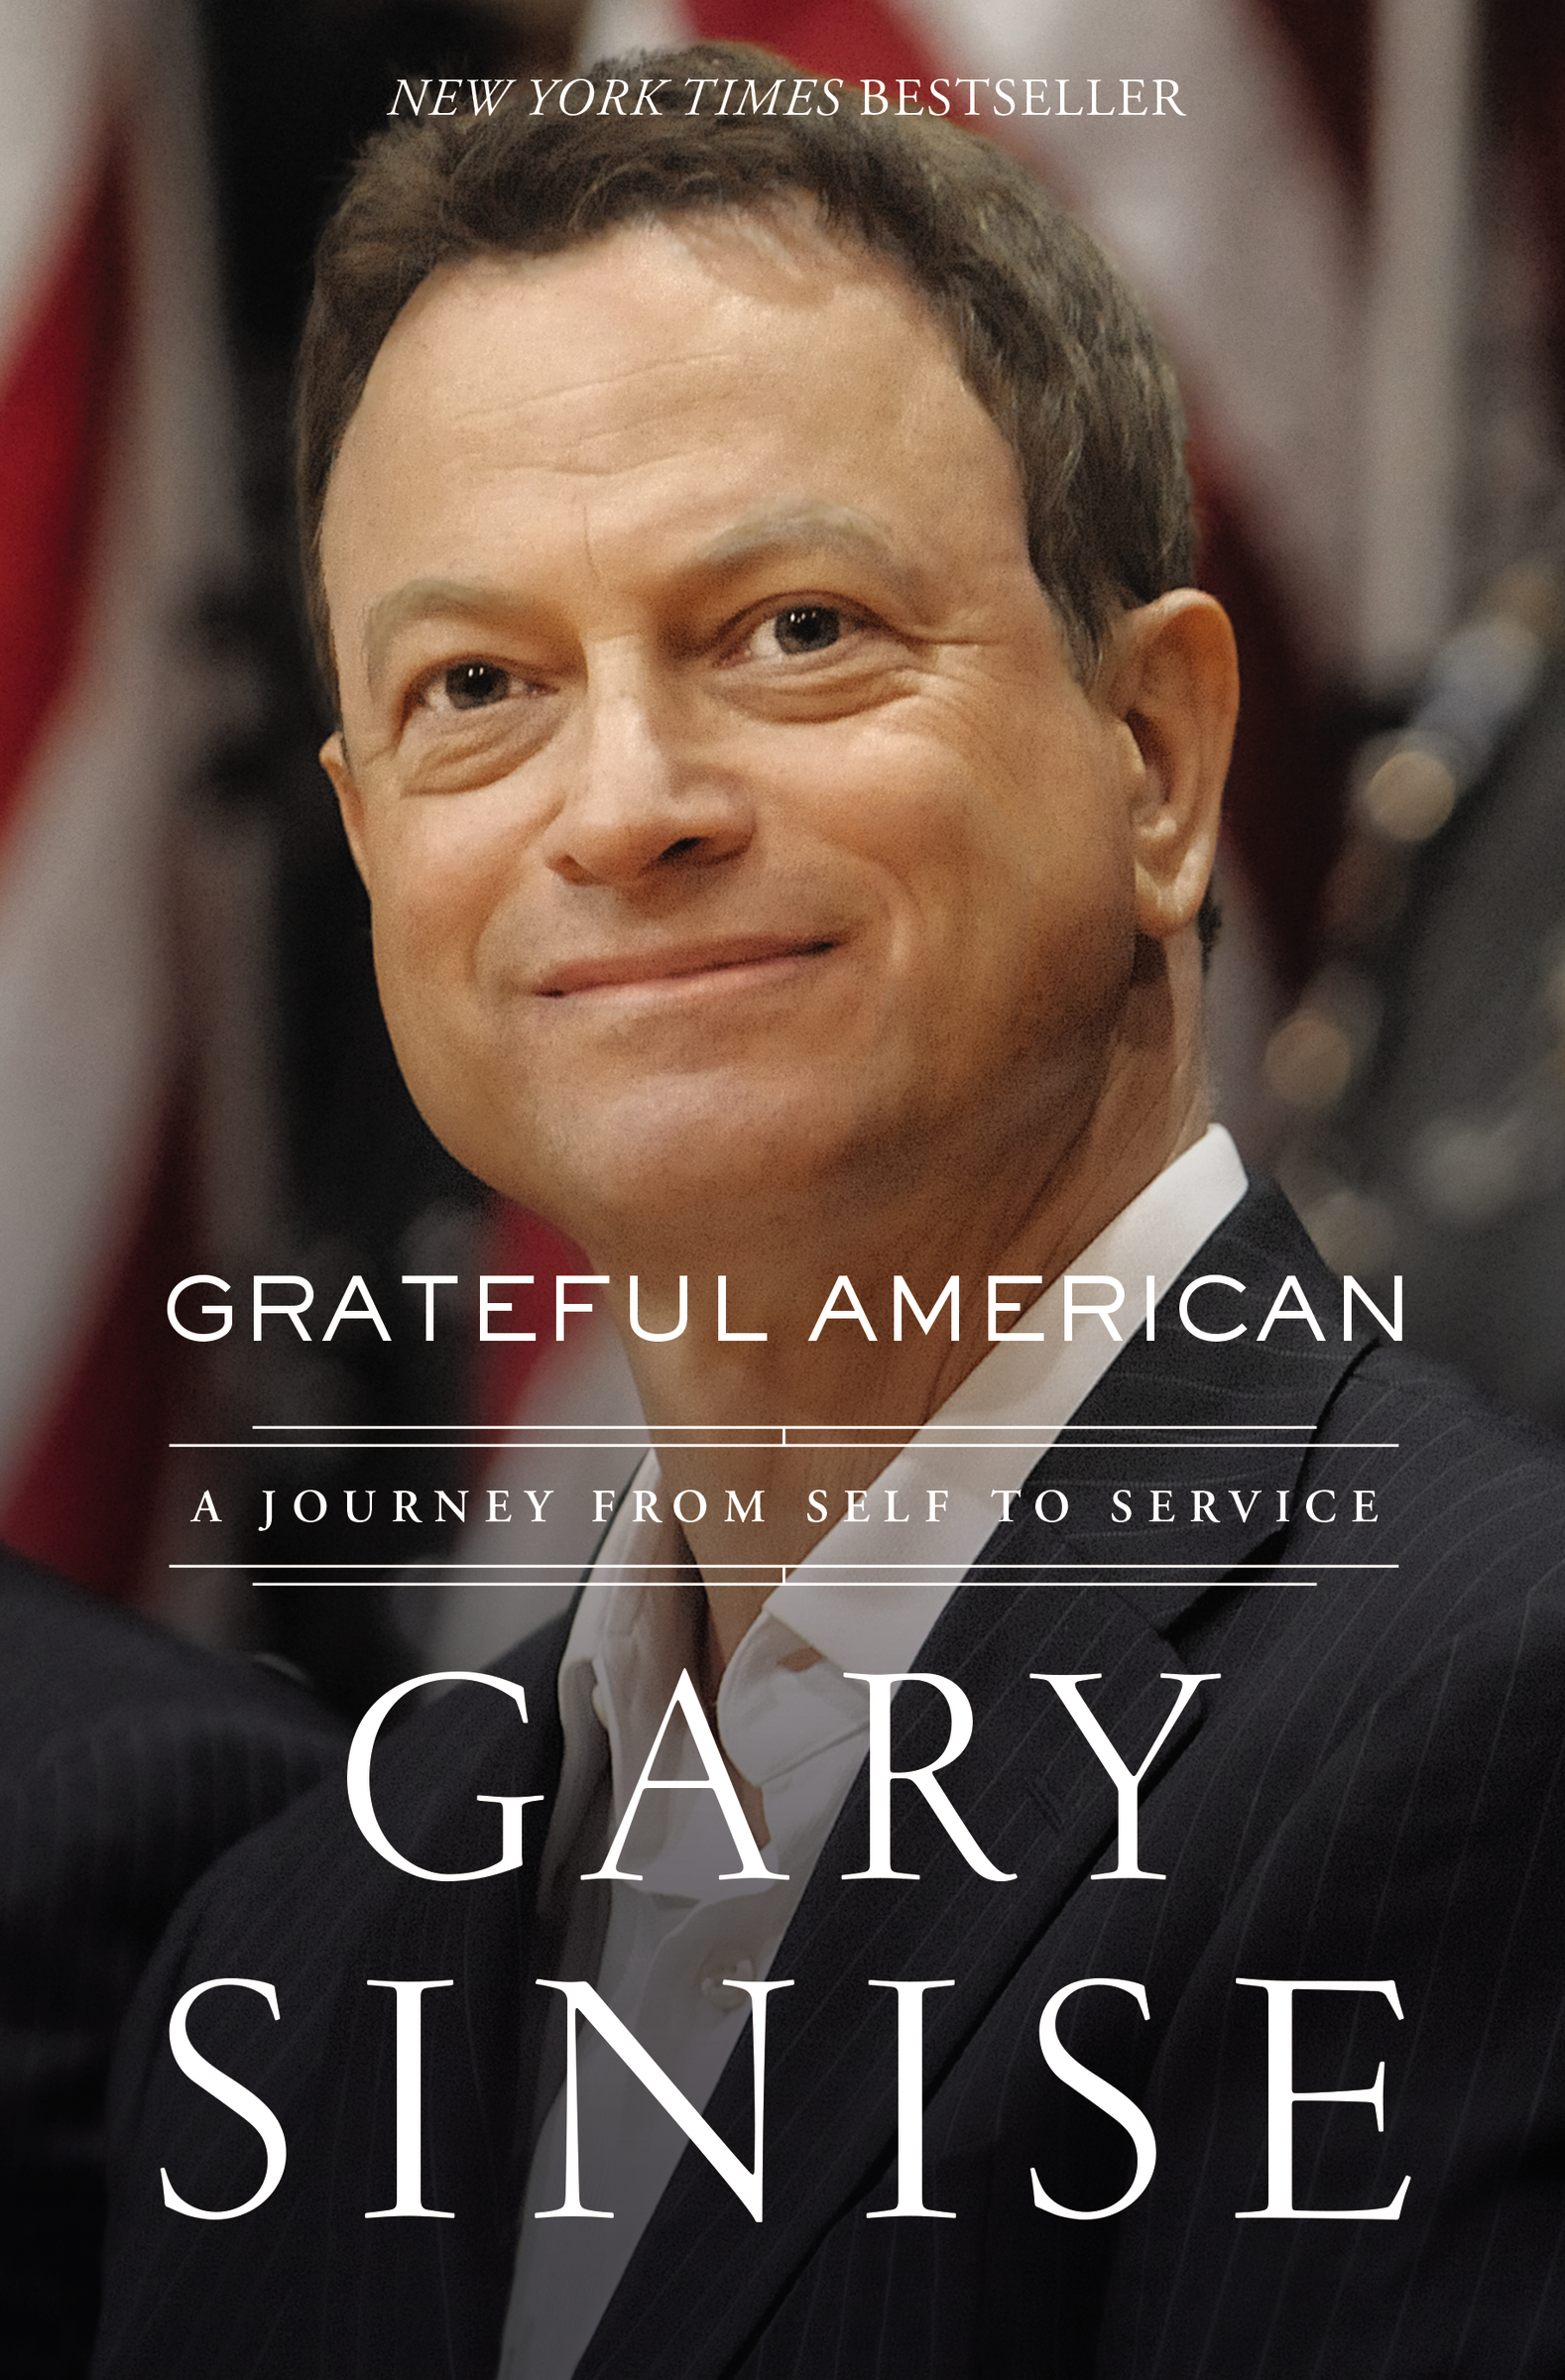 Grateful American a journey from self to service cover image